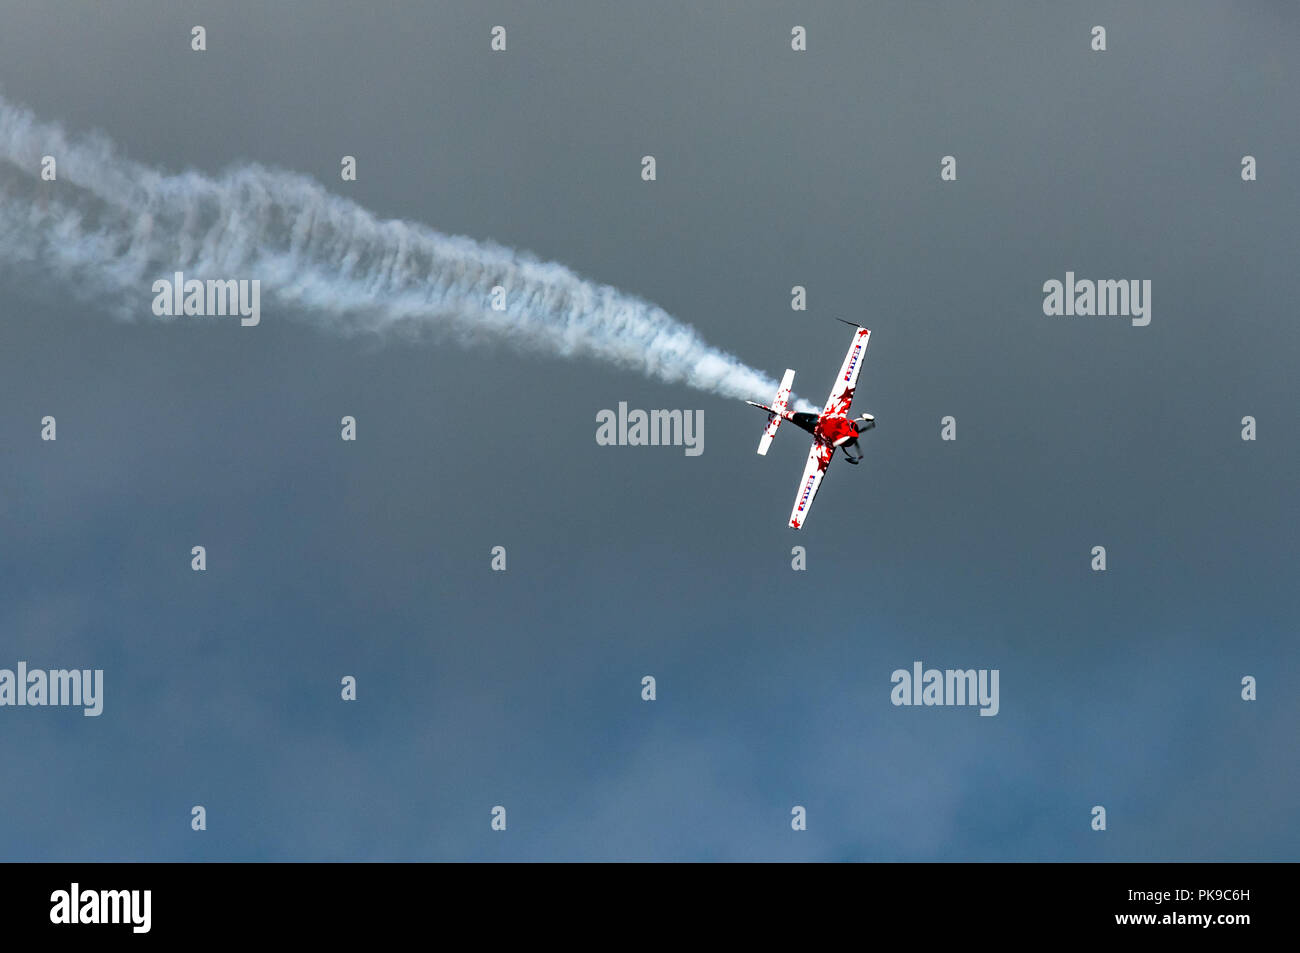 A plume of white smoke trails behind a G-Force Aerobatics Extra 300 monoplane during a display. - Stock Image